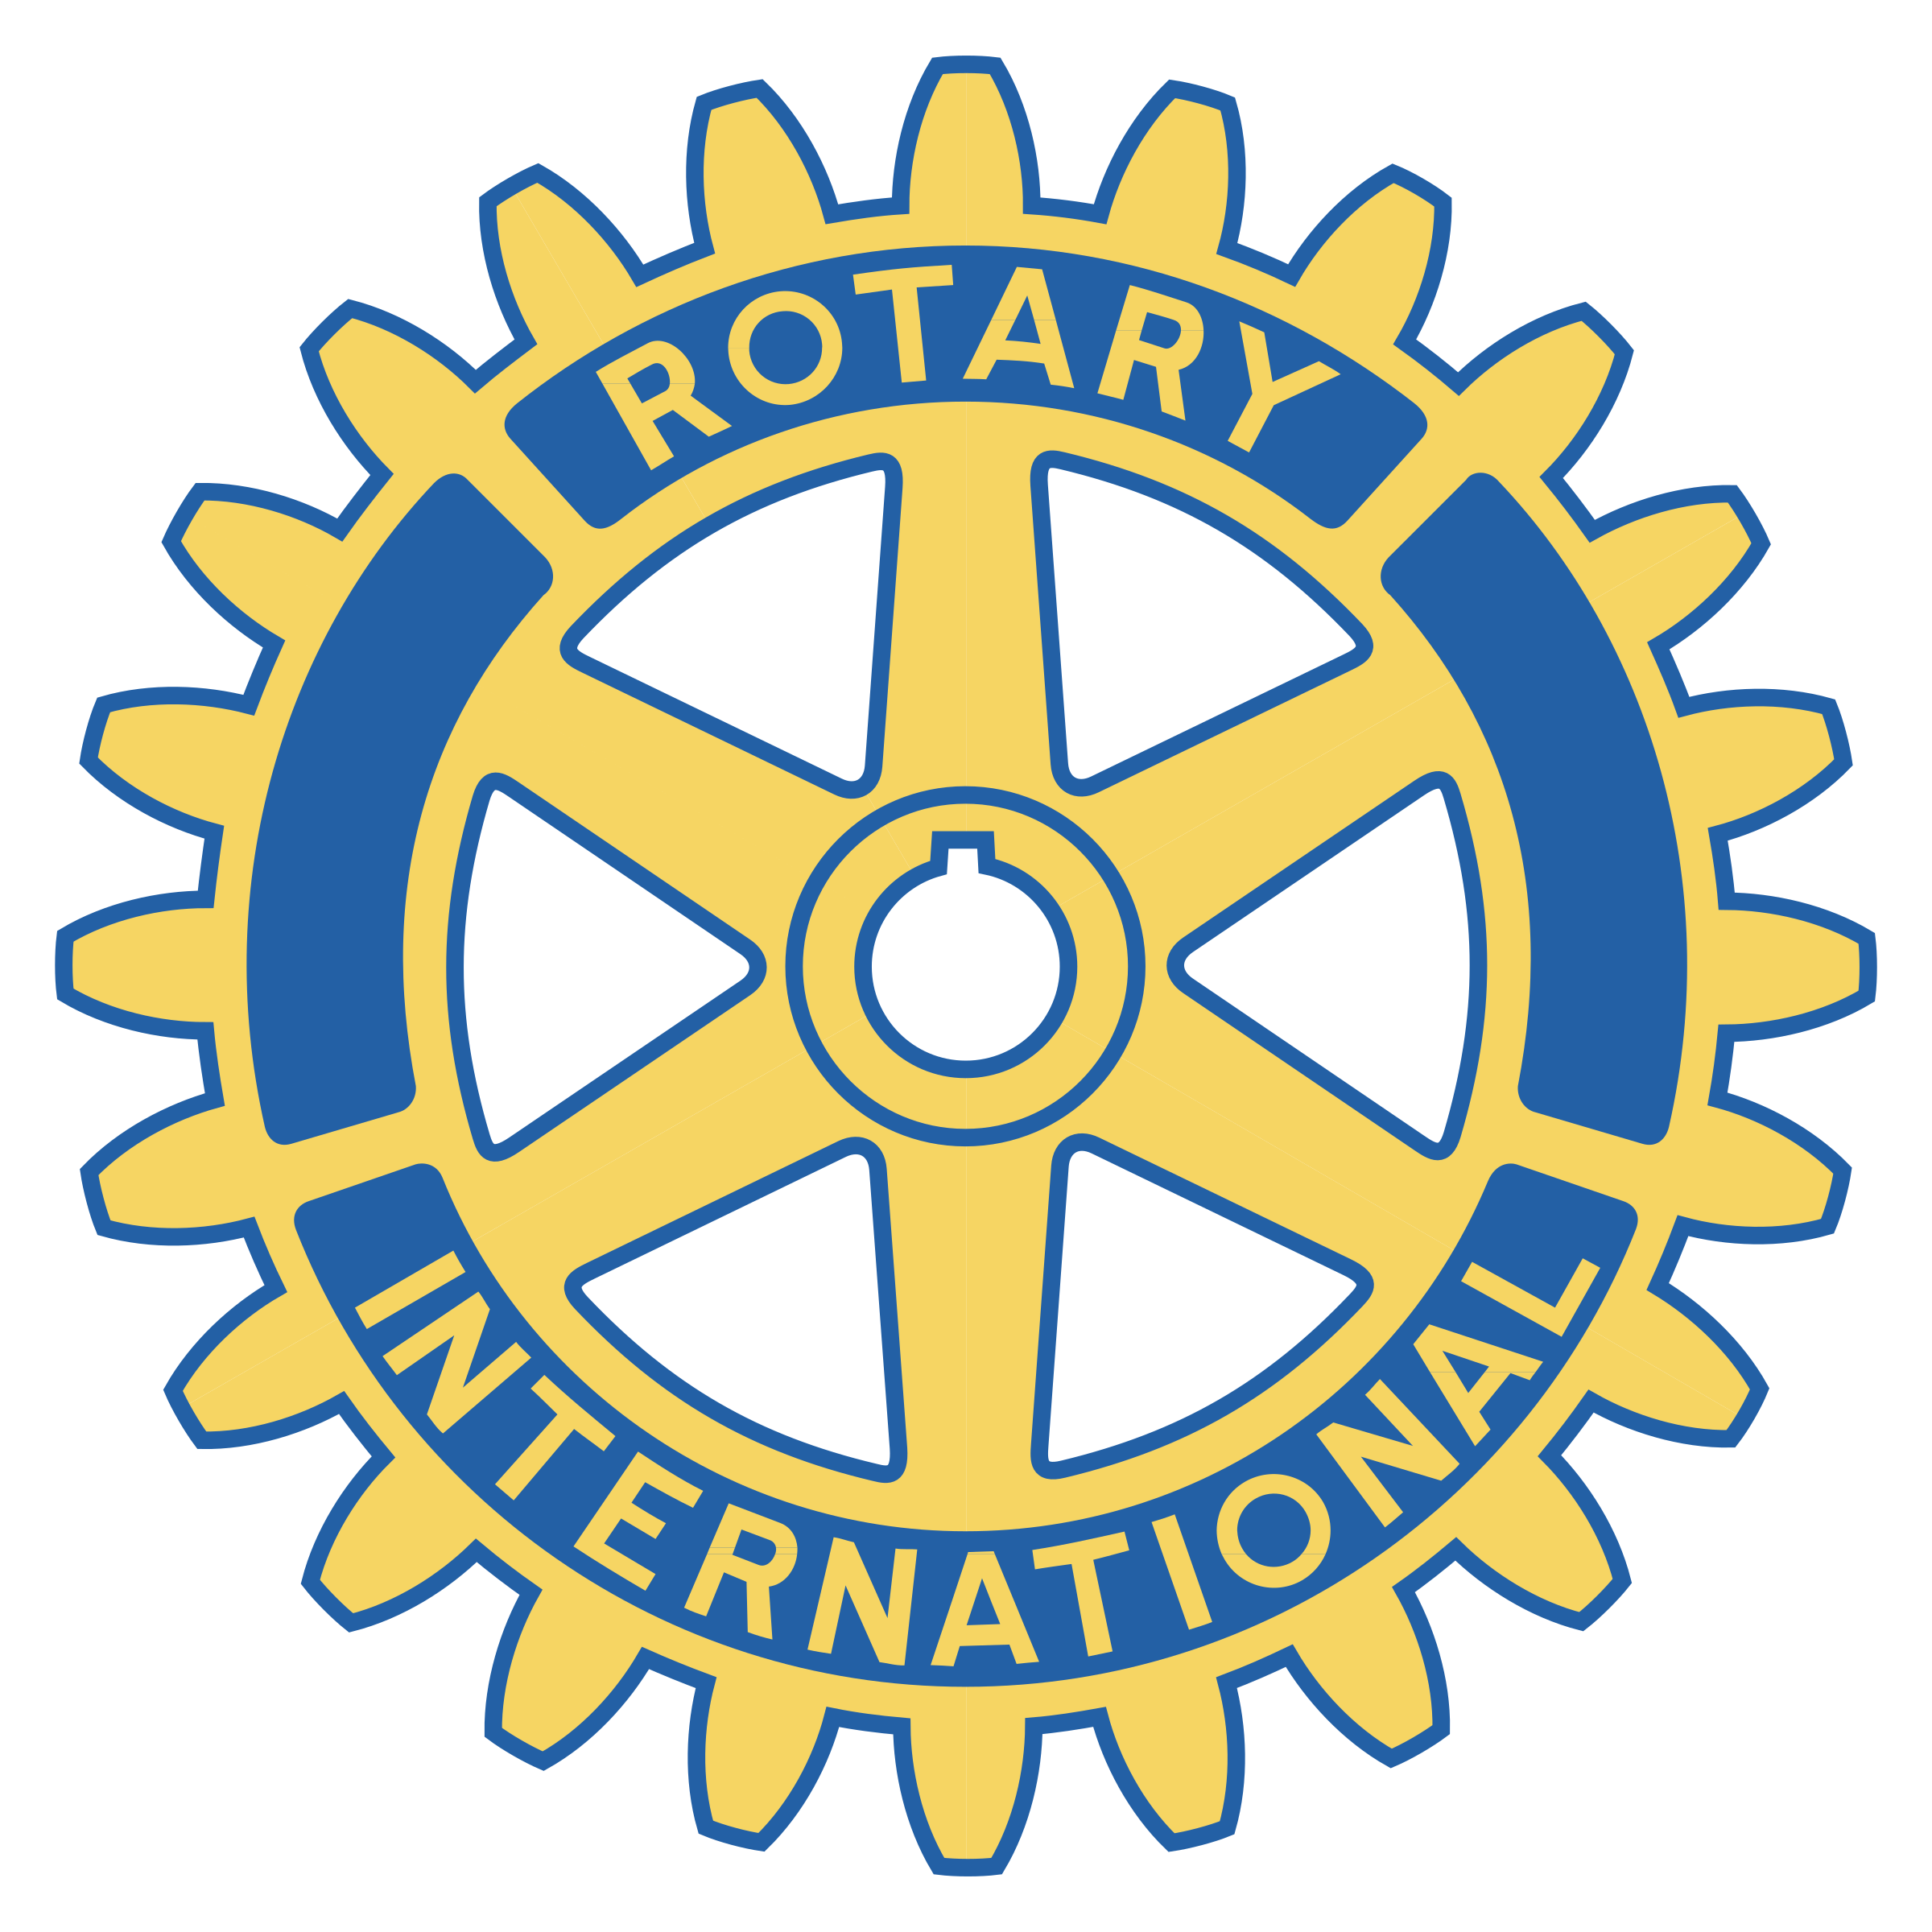 rotary-international-6-logo-png-transparentpng